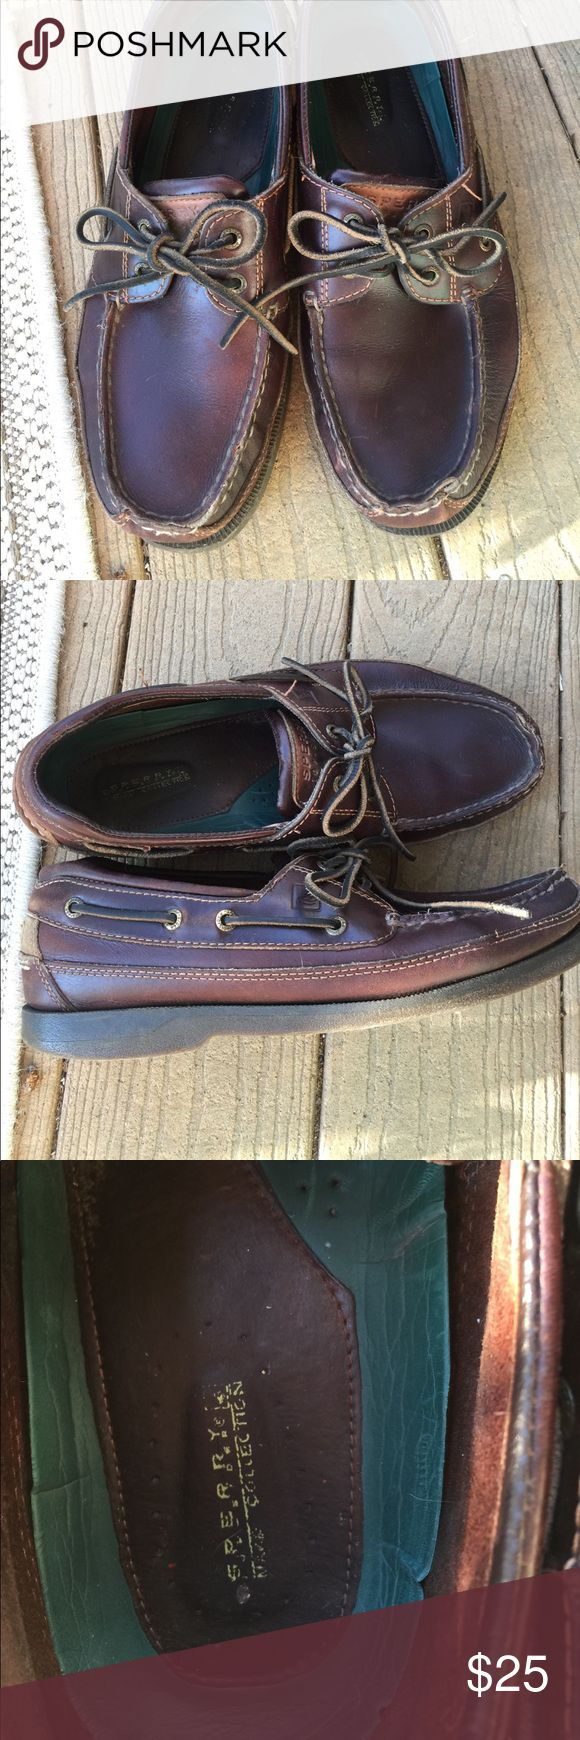 Sperry Top Siders Size 10 1/2 $25 Men's Sperry Top Siders Size 10 1/2 EUC $25 Sperry Top-Sider Shoes Boat Shoes